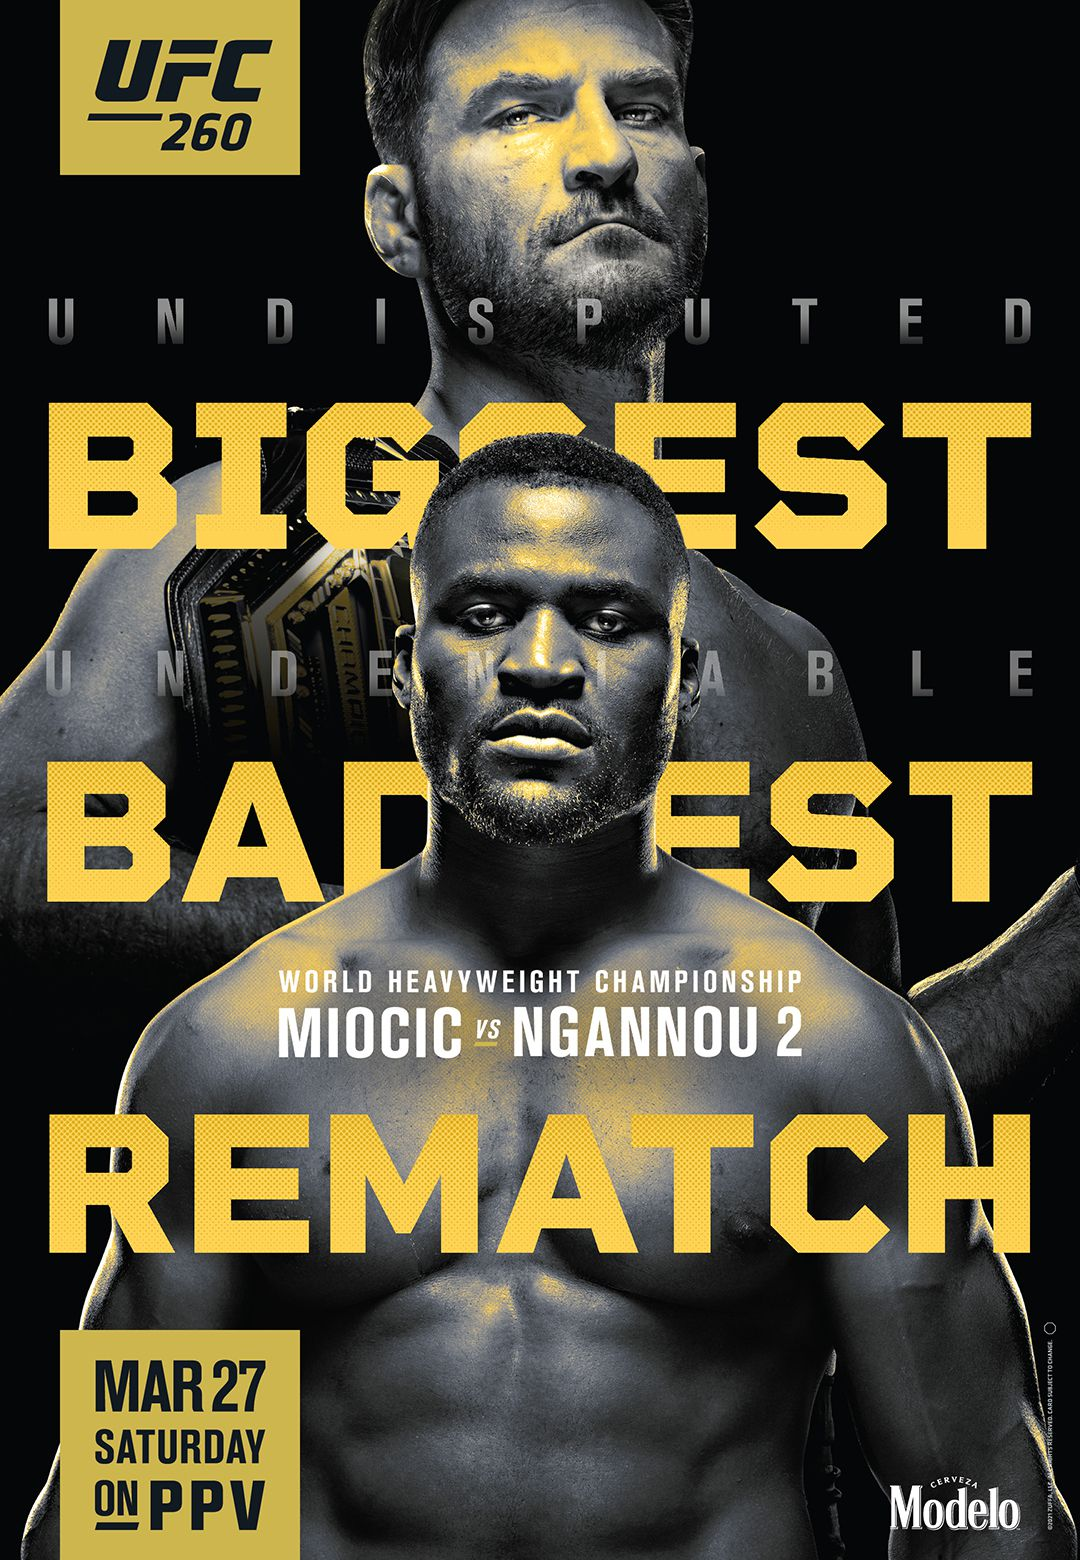 UFC 260 Miocic vs Ngannou 2: World Heavyweight Championship On The Line